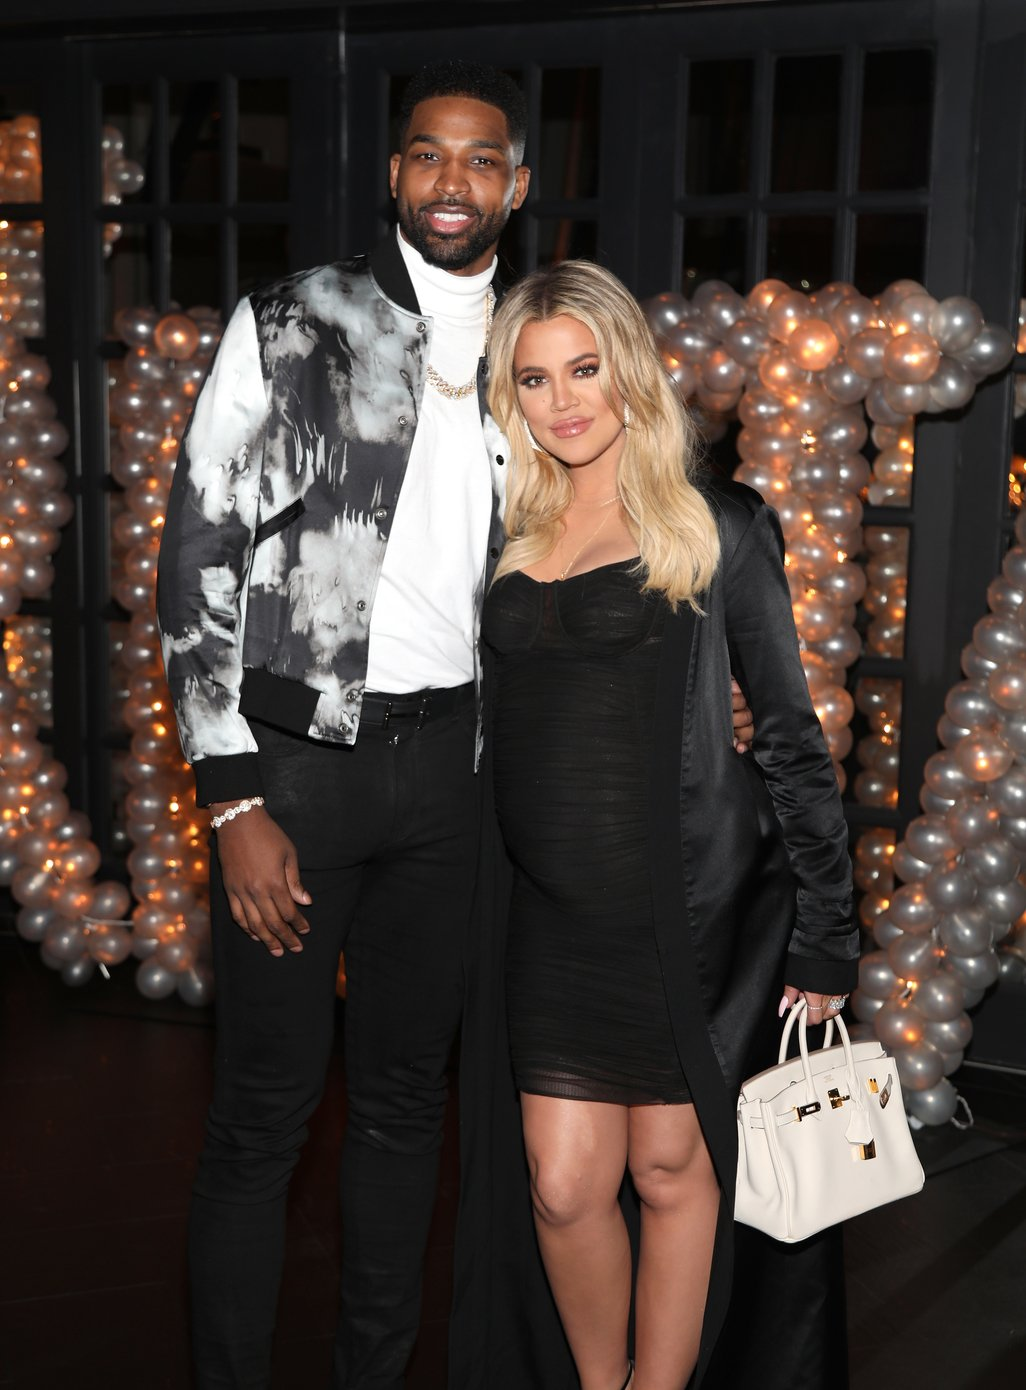 Tristan Thompson and Khloé Kardashian celebrate Tristan Thompson's Birthday at Beauty & Essex on March 10, 2018. | Source: Getty Images